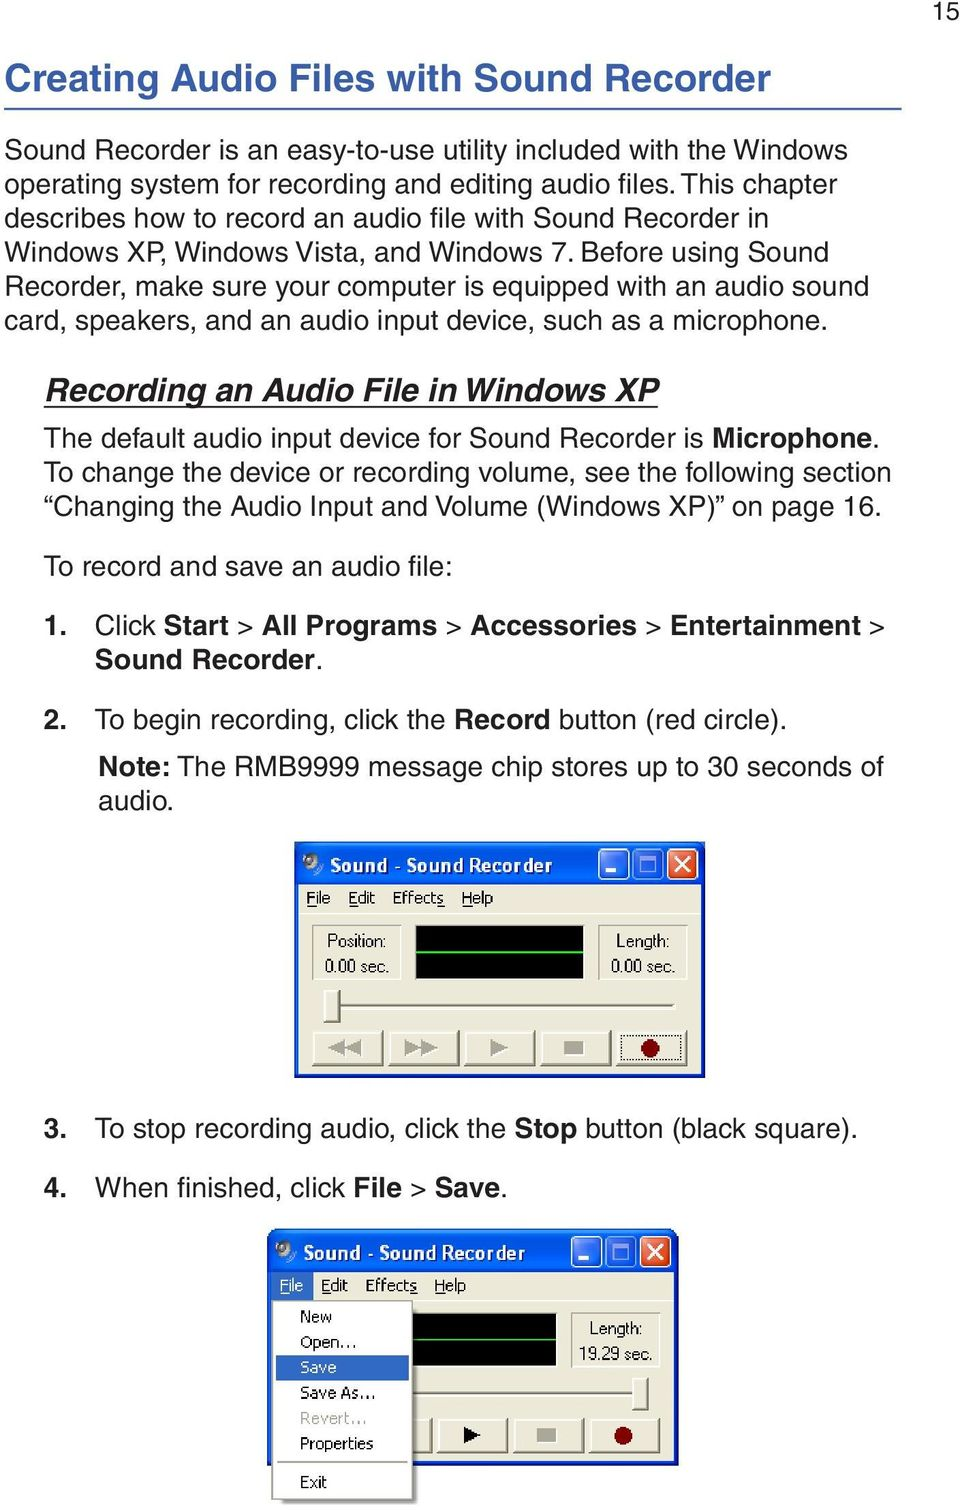 Before using Sound Recorder, make sure your computer is equipped with an audio sound card, speakers, and an audio input device, such as a microphone.